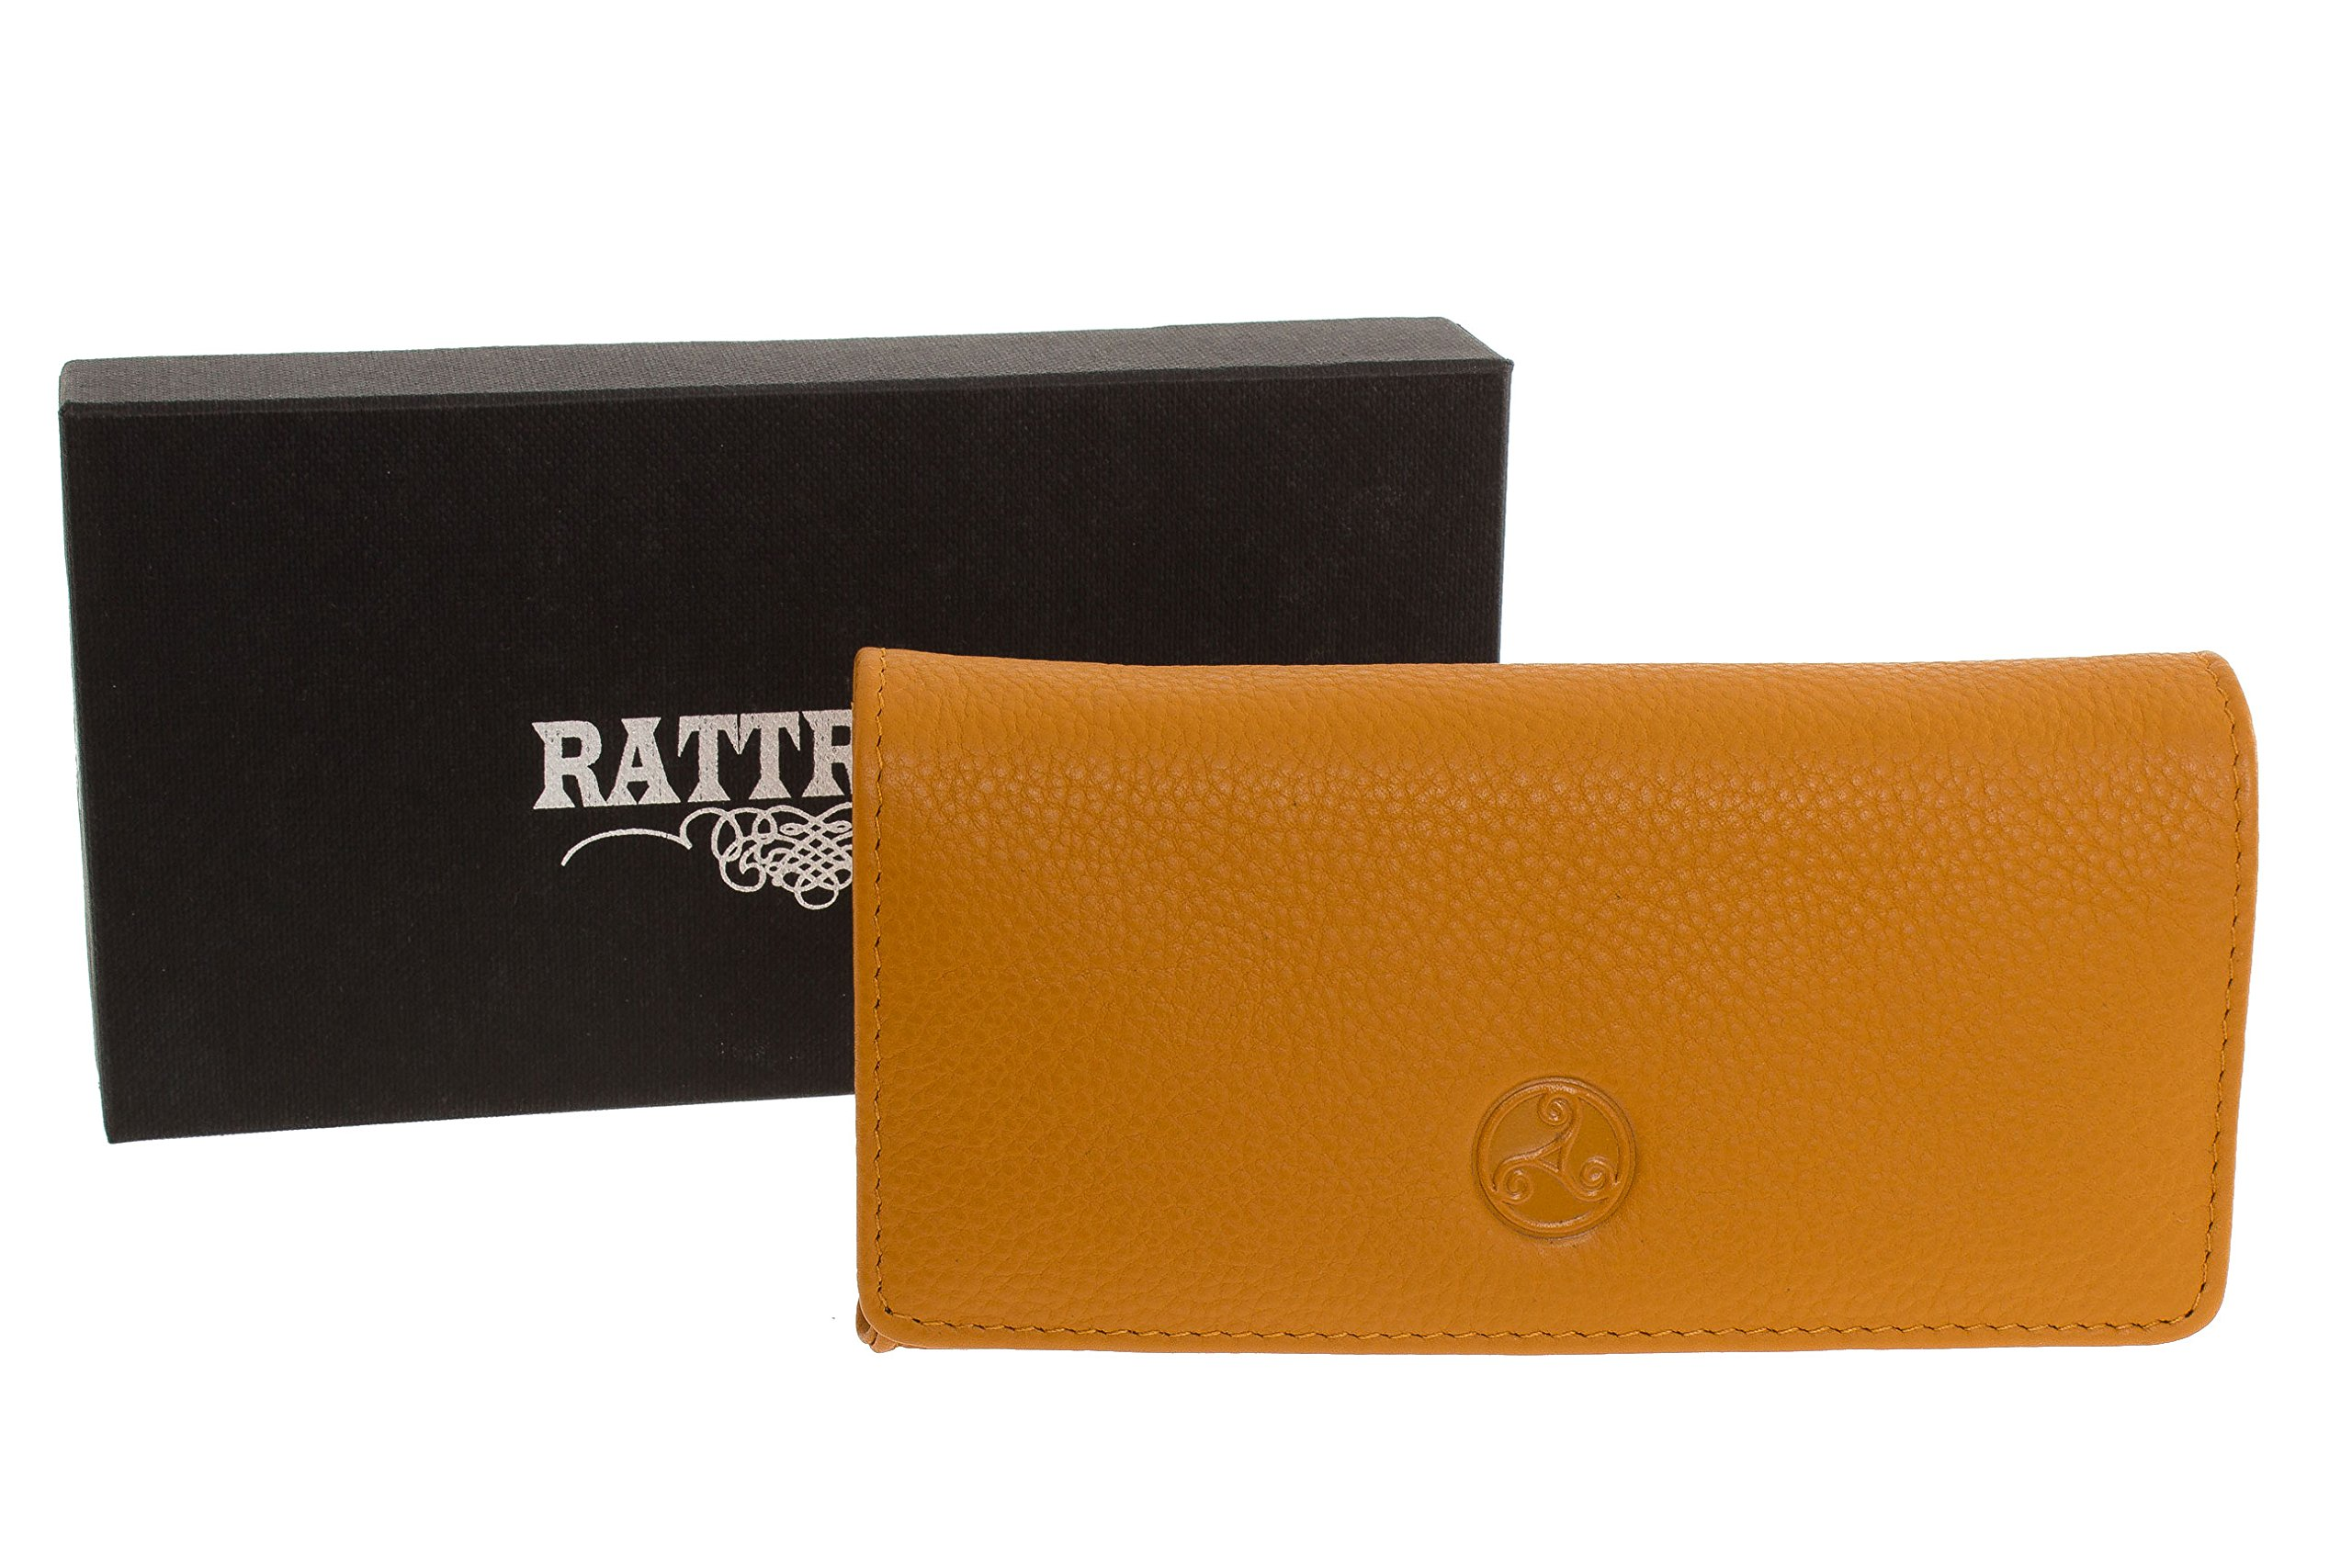 Rattray's Large Standup Pouch - Natural